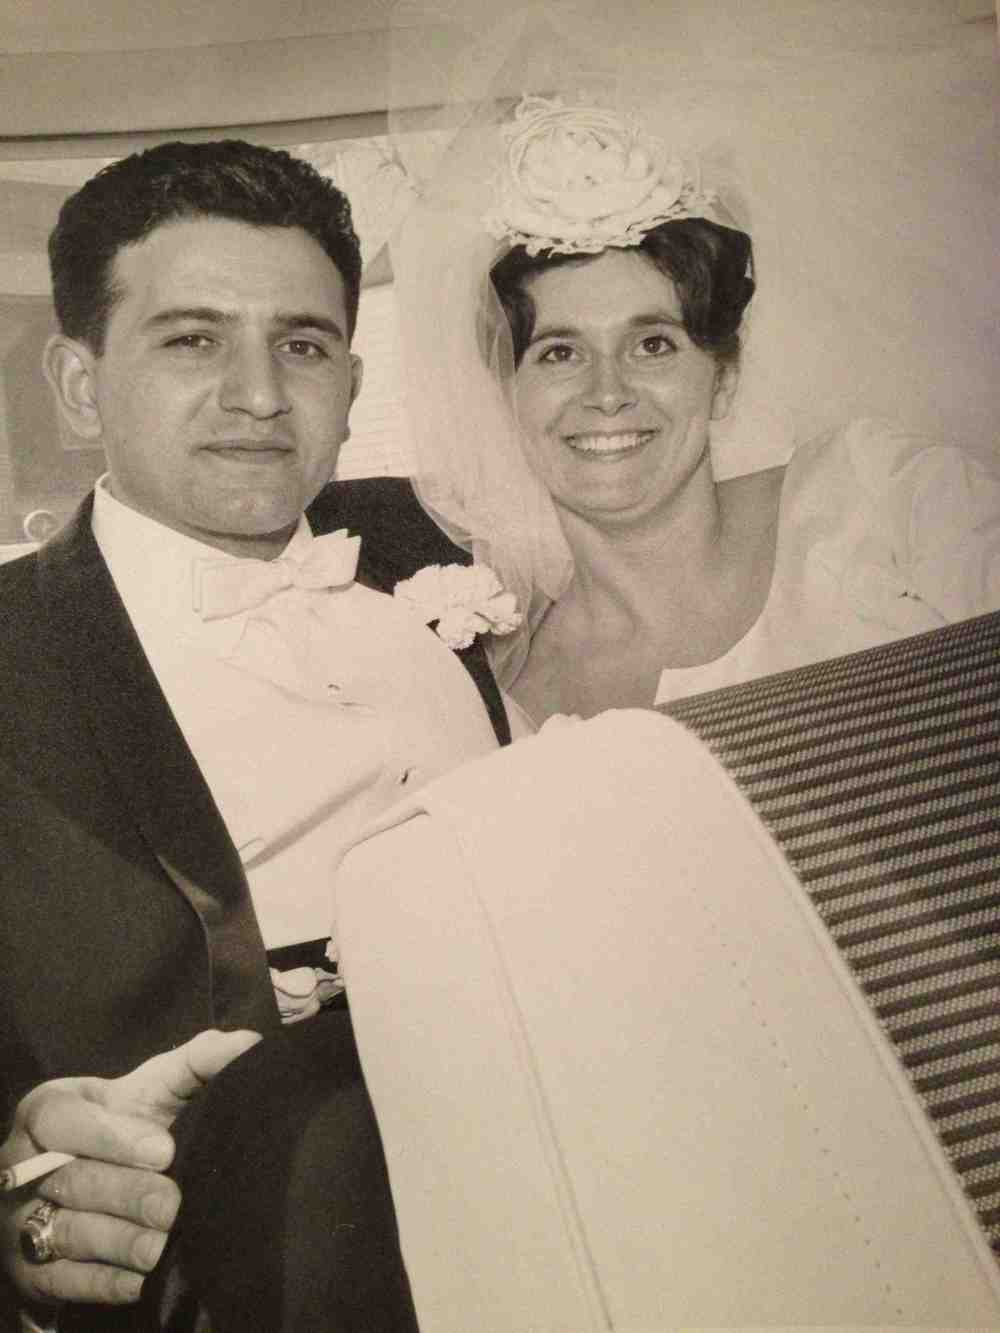 April 24, 1965:  My parents got married.  I'll be doing the same this weekend.  Wish me luck...and GO BLUE!